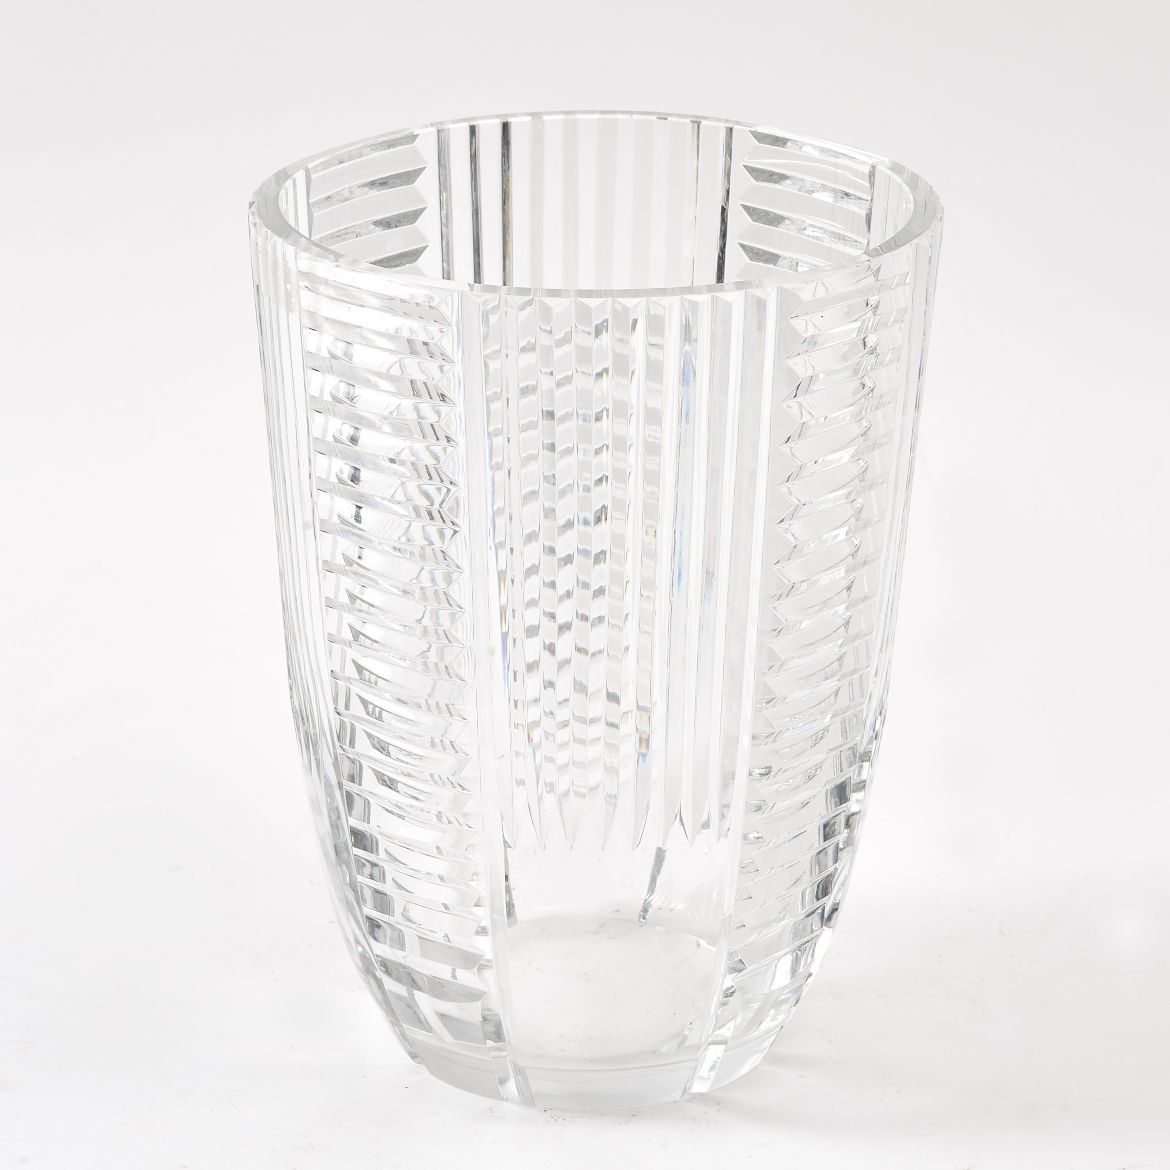 Geometric Cut Glass Vase